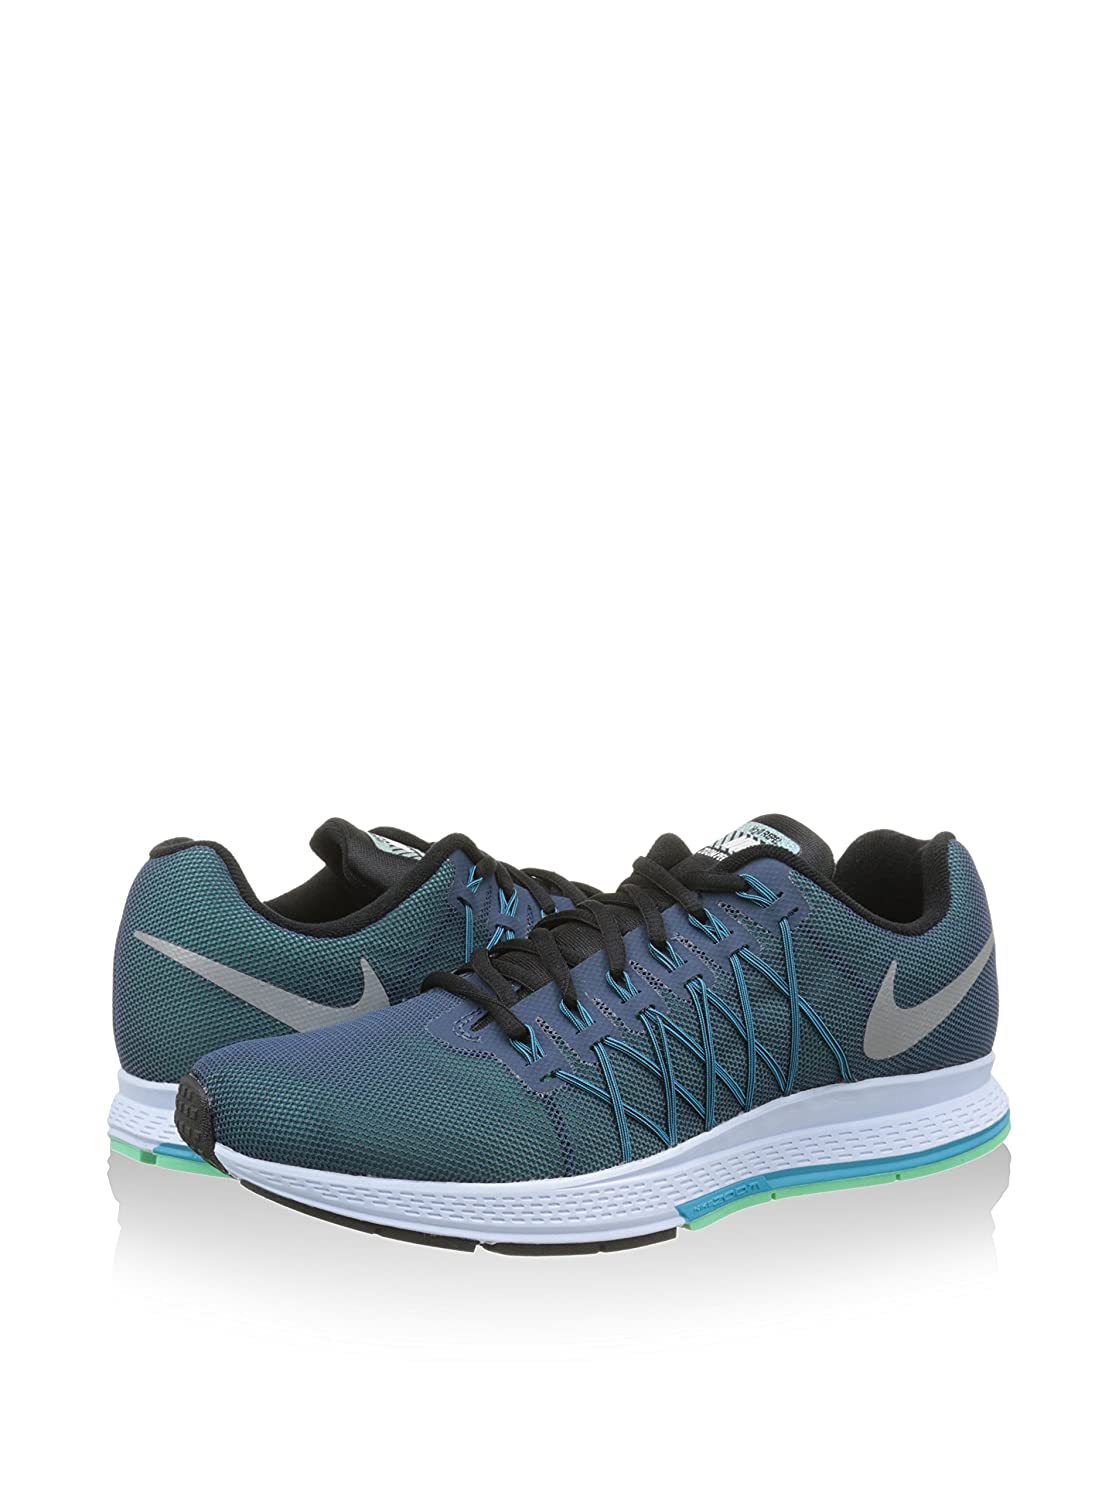 in stock 53022 90e98 Nike Men's Air Zoom Pegasus 32 Flash Running Shoes